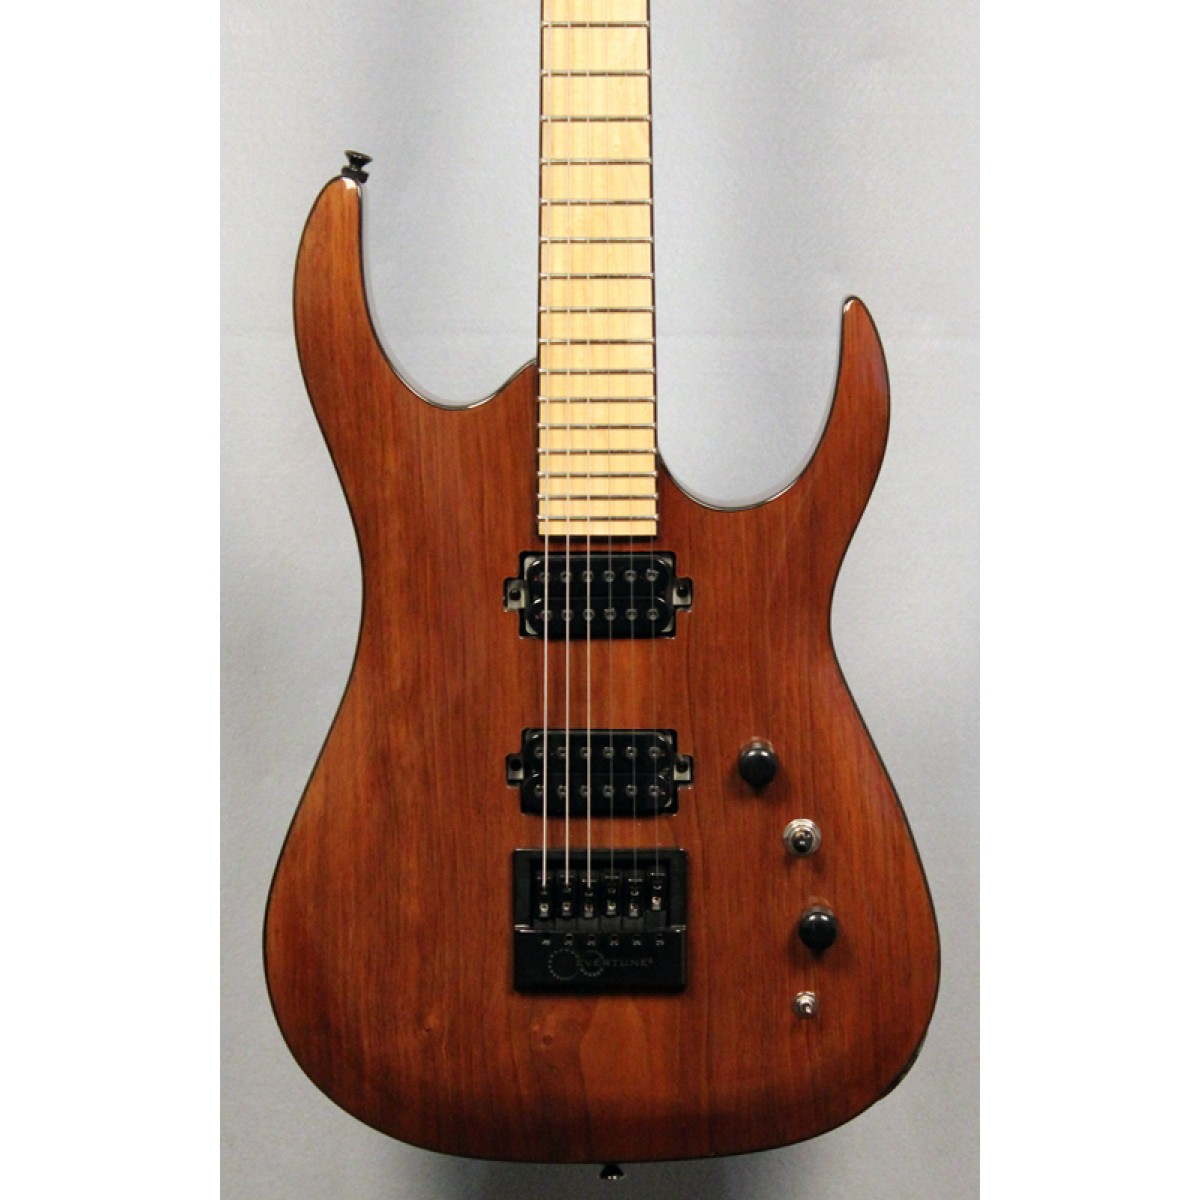 halo custom guitars merus 6 string with evertune. Black Bedroom Furniture Sets. Home Design Ideas